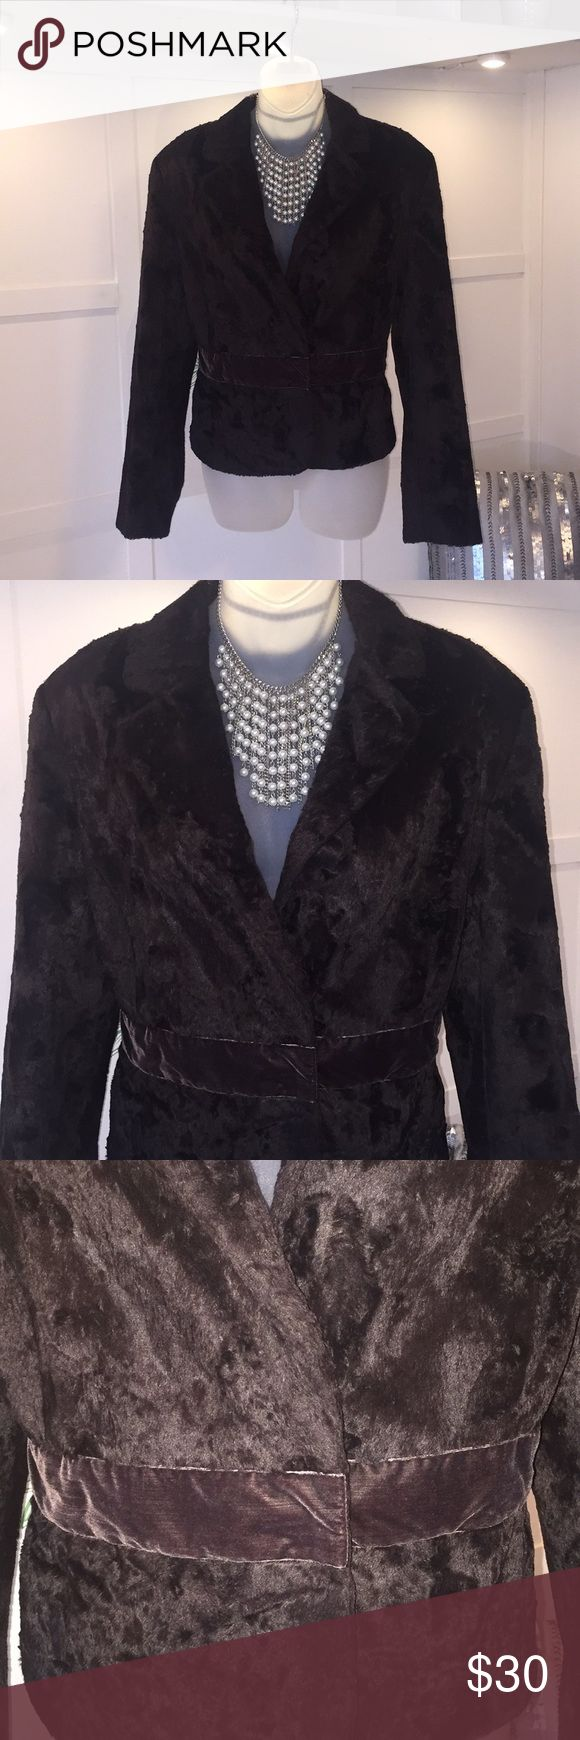 NINE WEST Brown Fur Jacket Velvet Band Detail NINE WEST Brown Fur Short Jacket. 2 snap closure, Velvet band detail at waist. Fully lined, Excellent Condition! Nine West Jackets & Coats Blazers